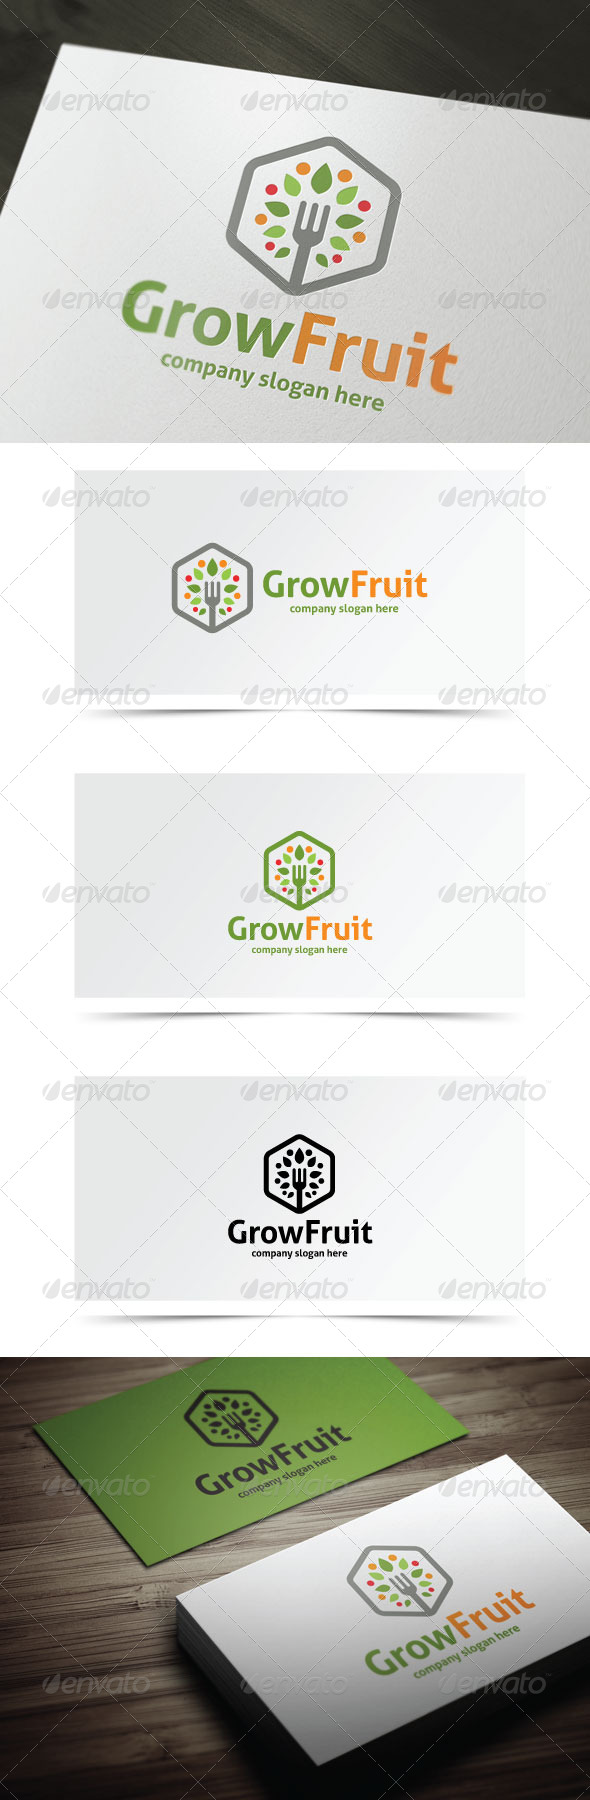 GraphicRiver Grow Fruit 8197121